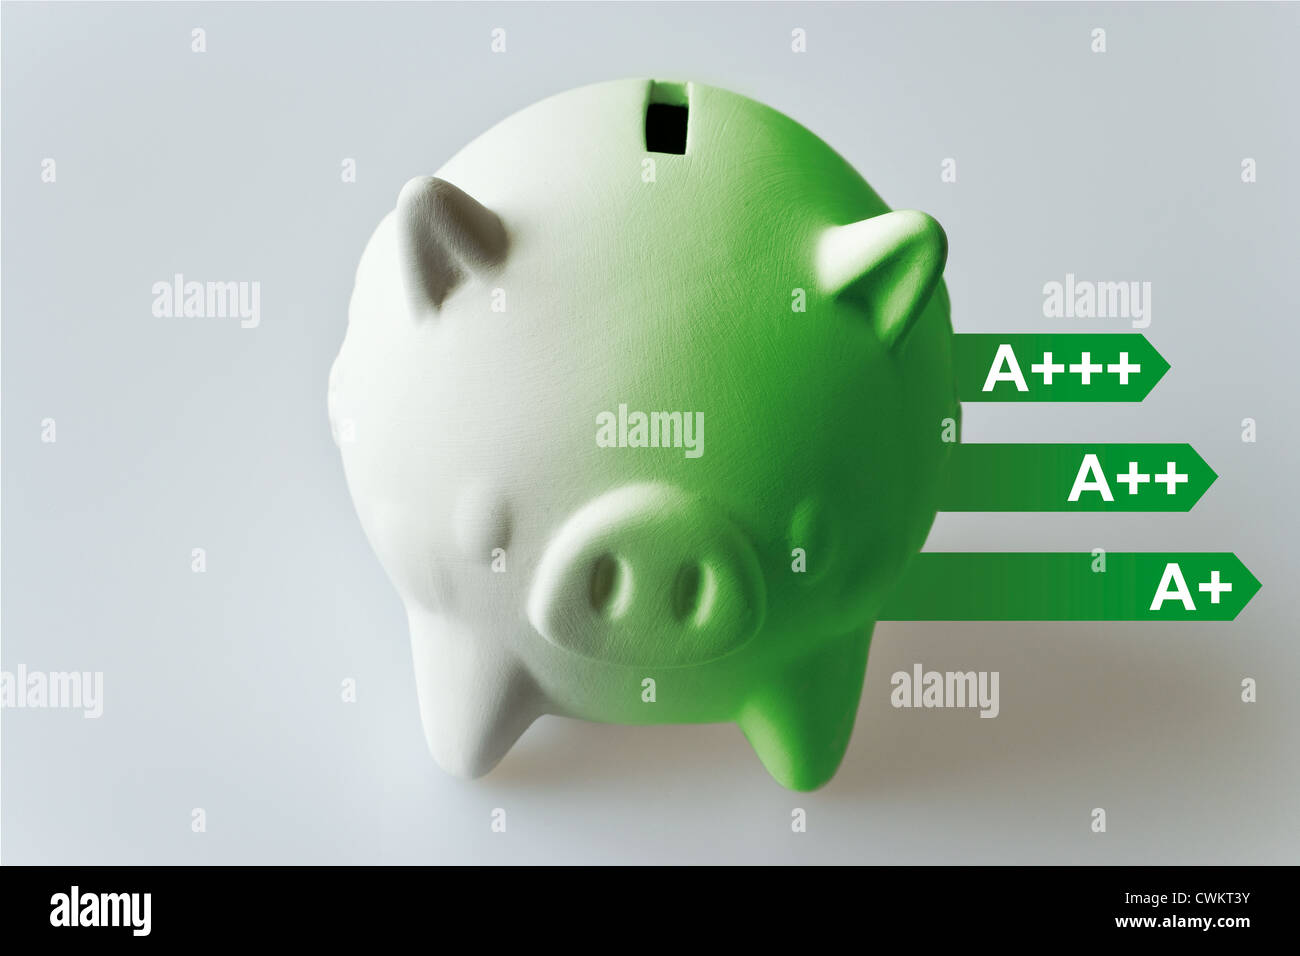 Piggy bank with energy savings scale - Stock Image